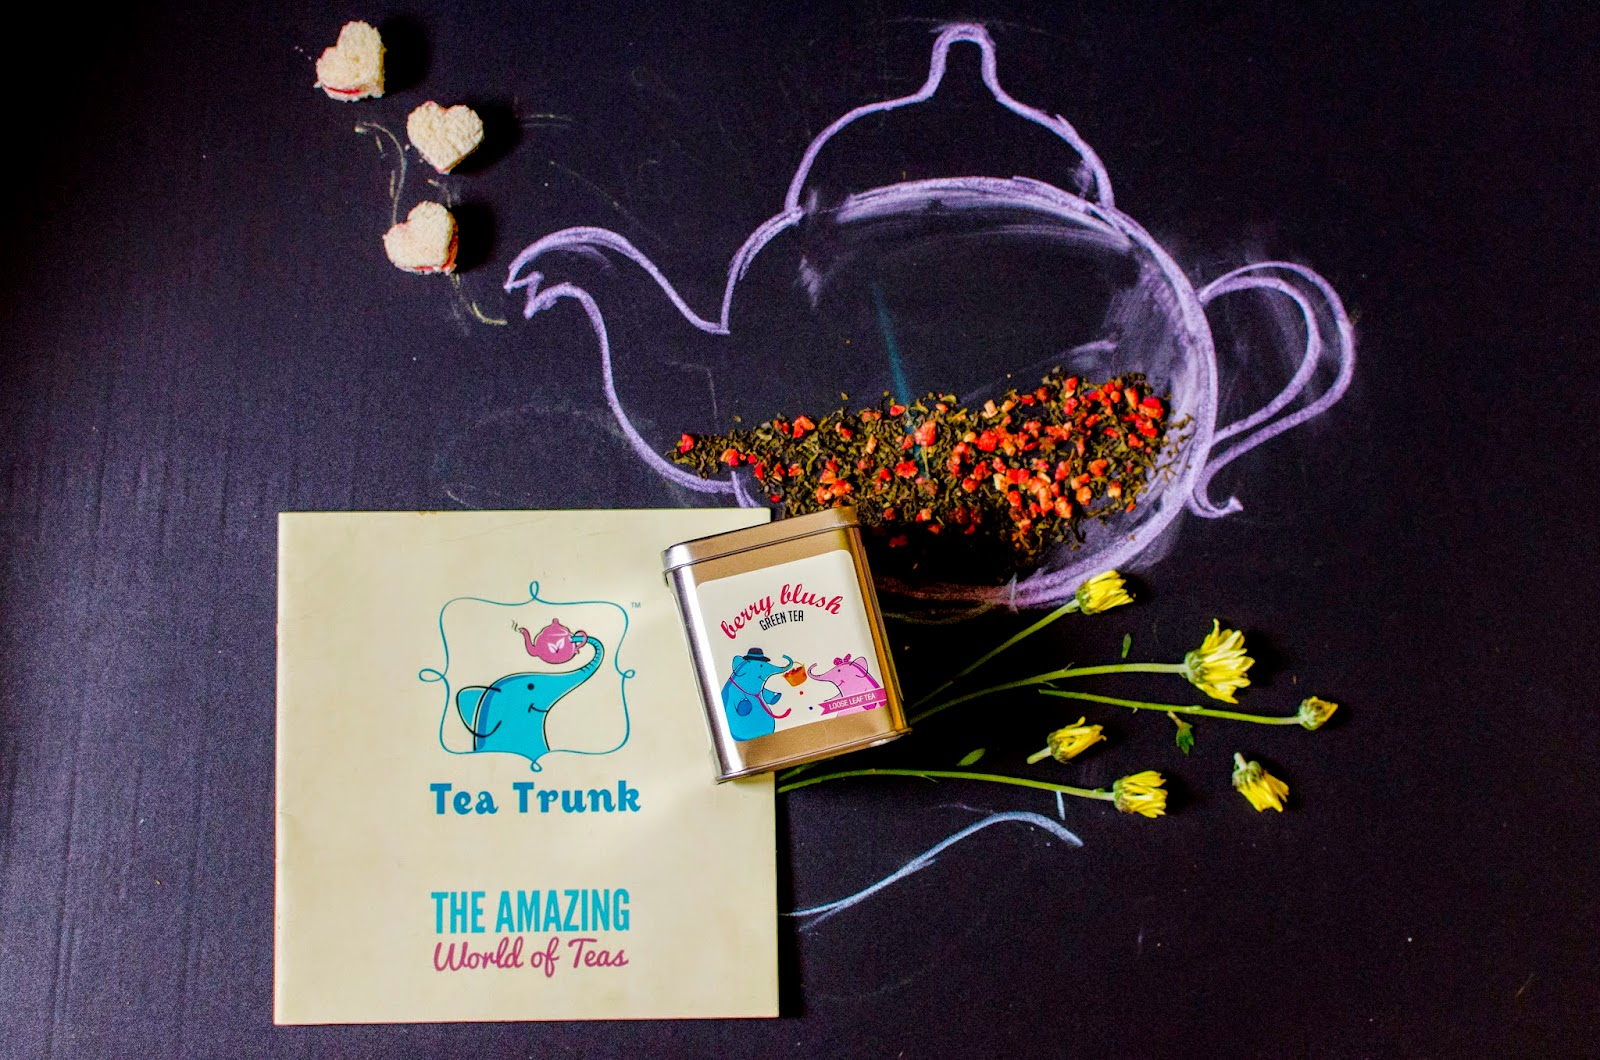 best-tea-rands-in-india-Tea_Trunk-image